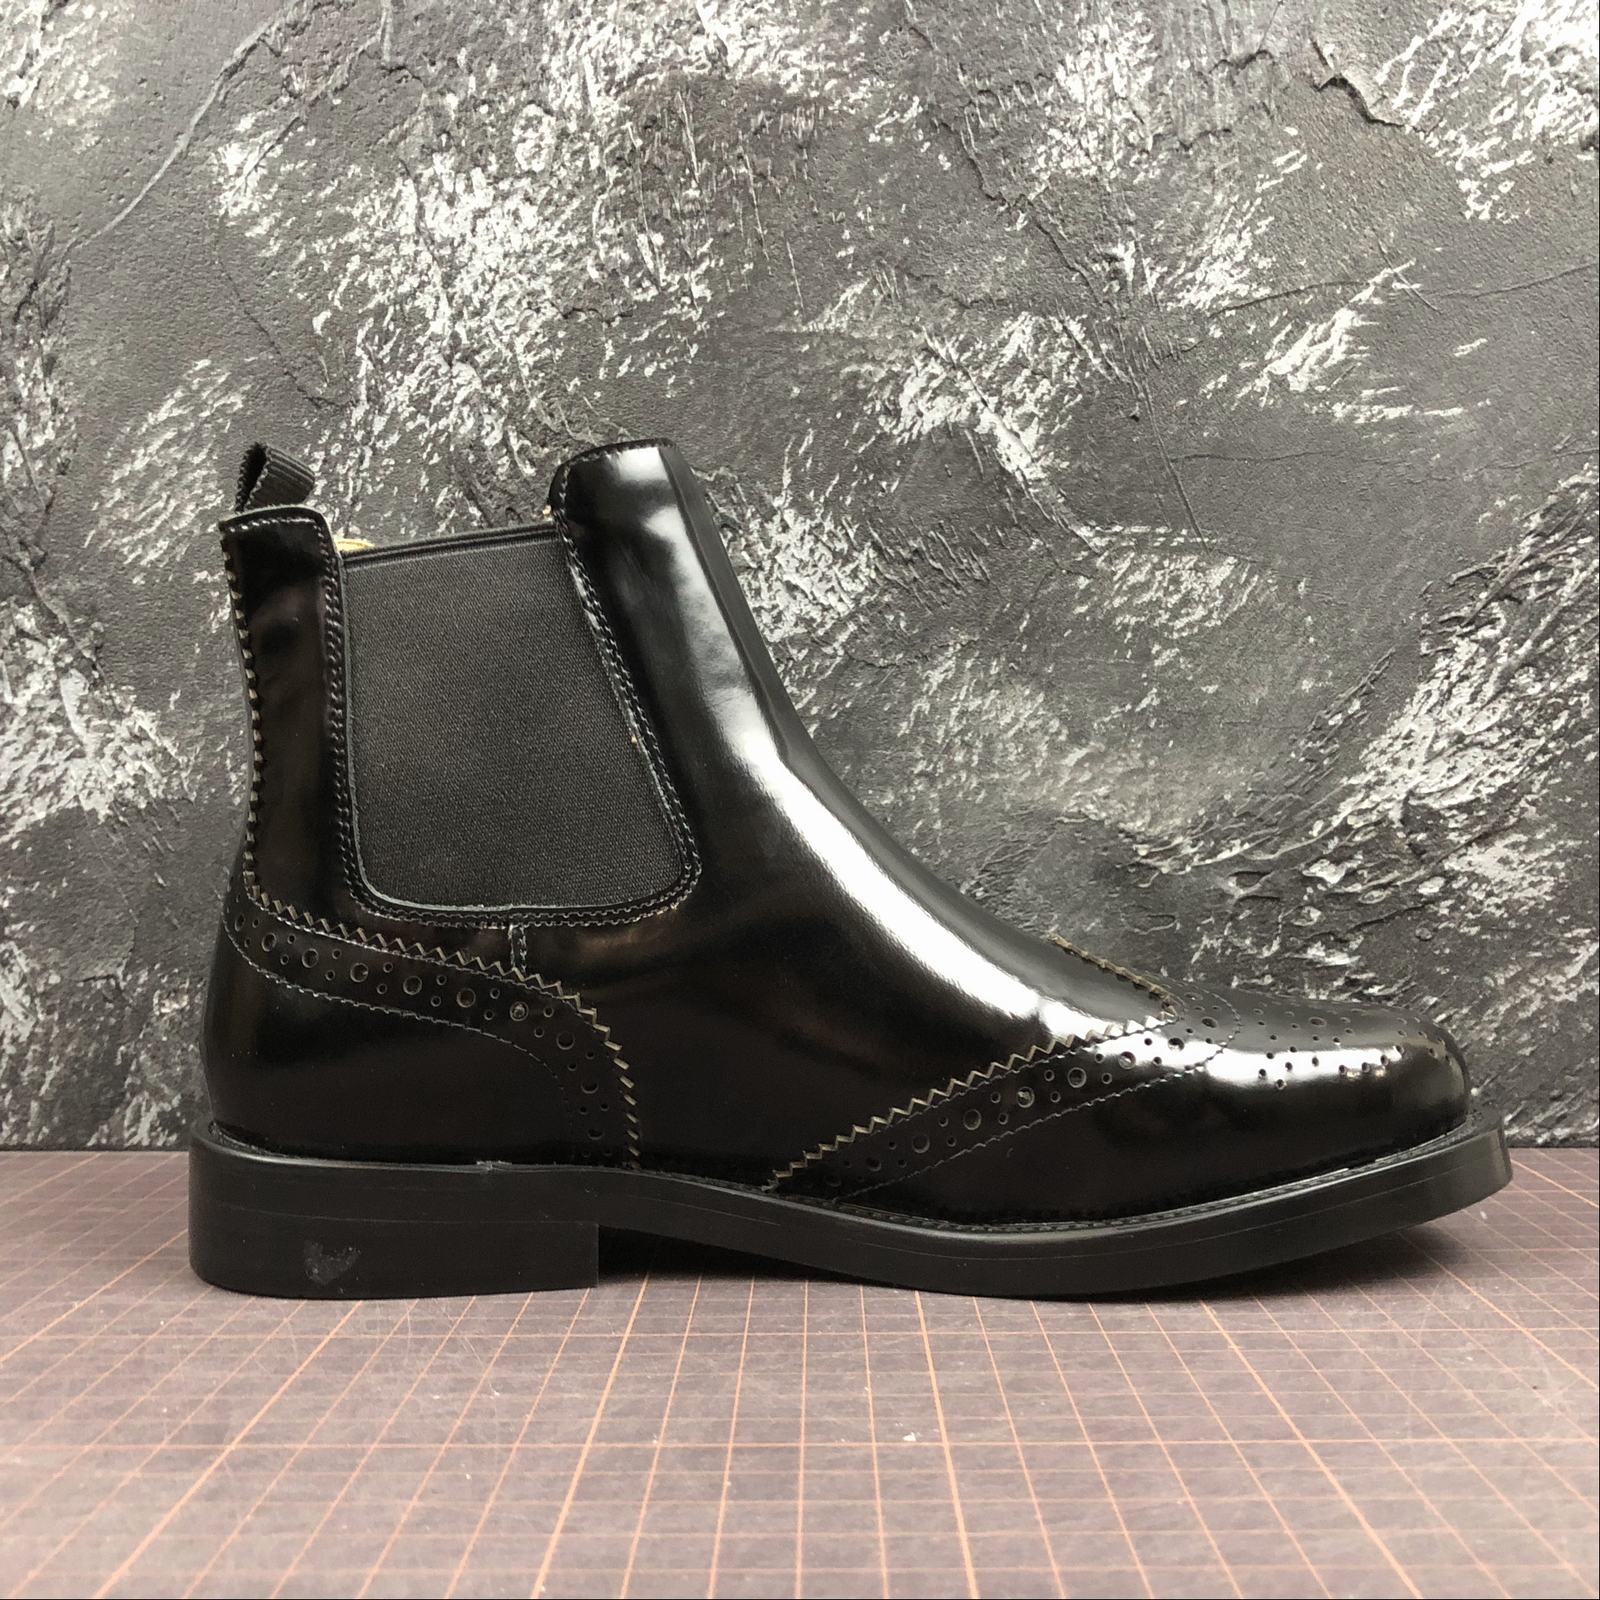 Женские зимние ботинки Churchs Ketsby Chelsea Leather Boots Black - фото №2